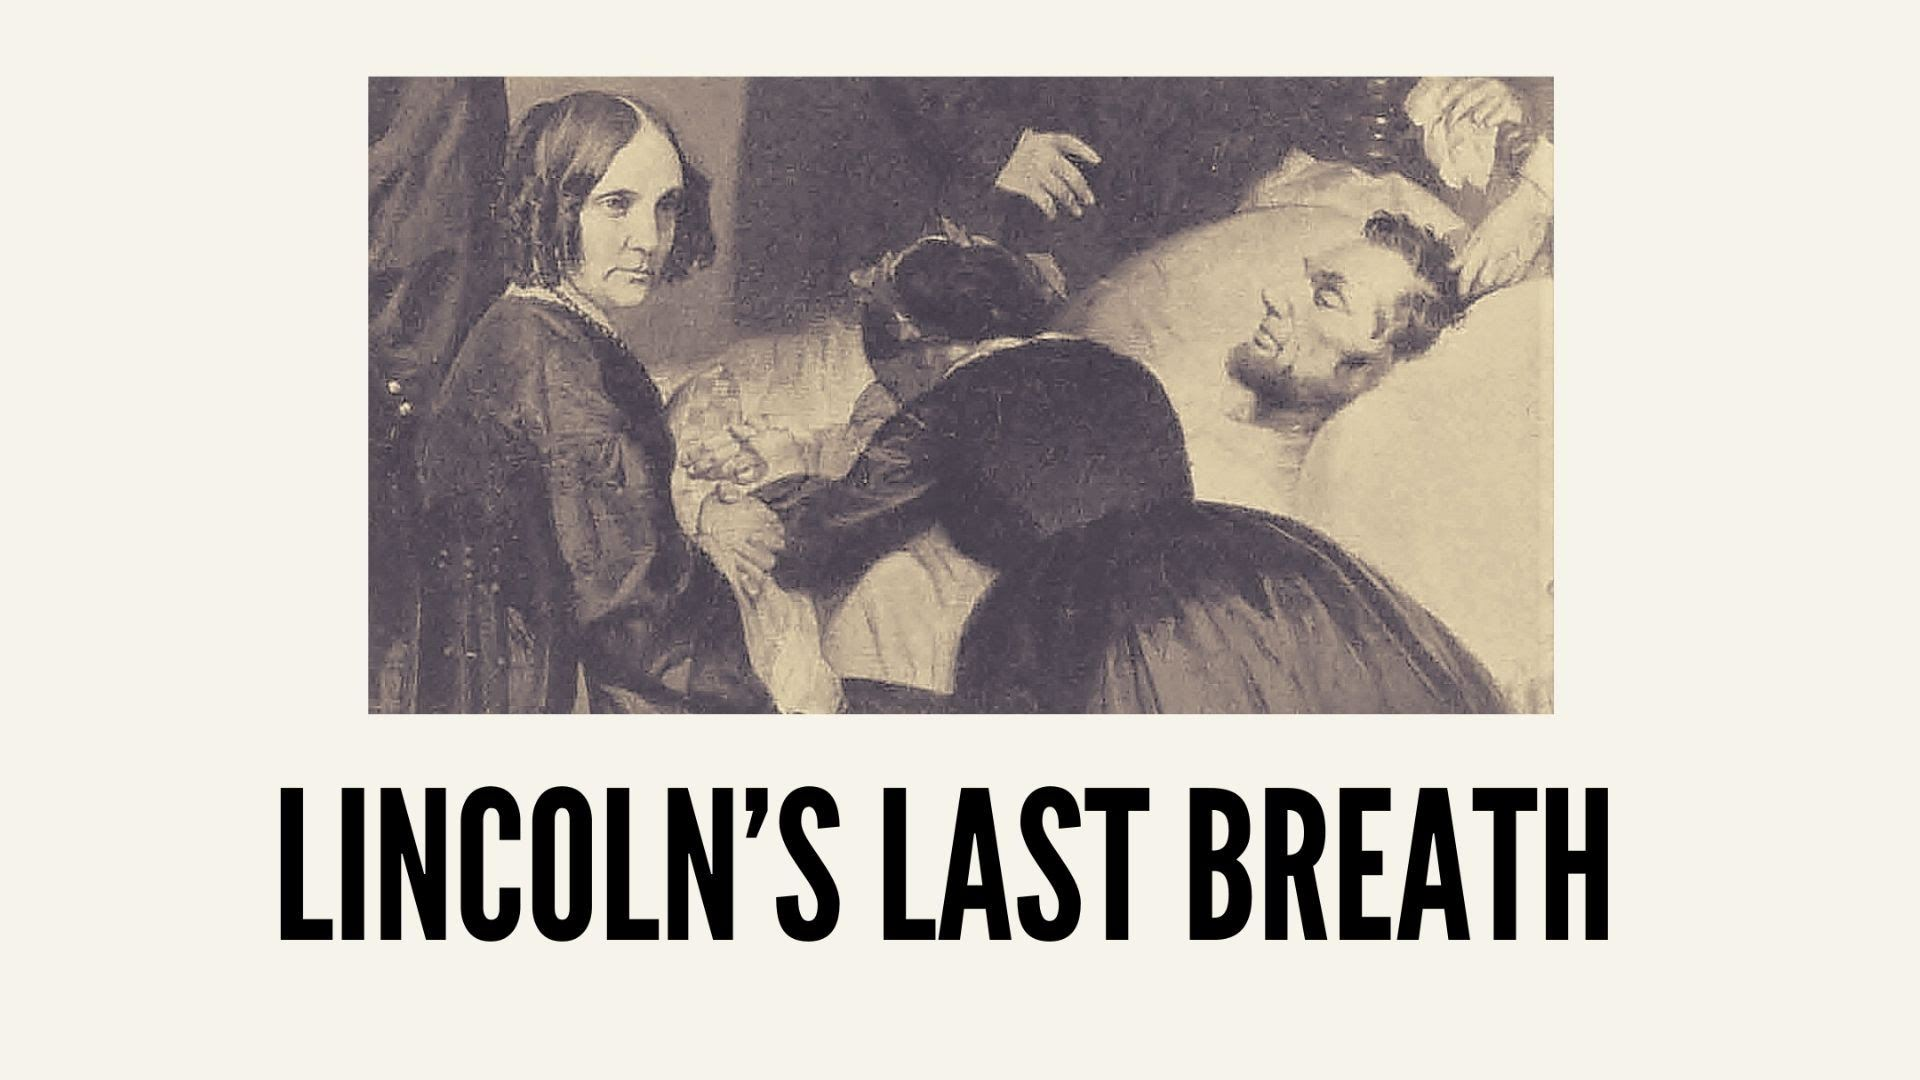 LINCOLN'S LAST BREATH